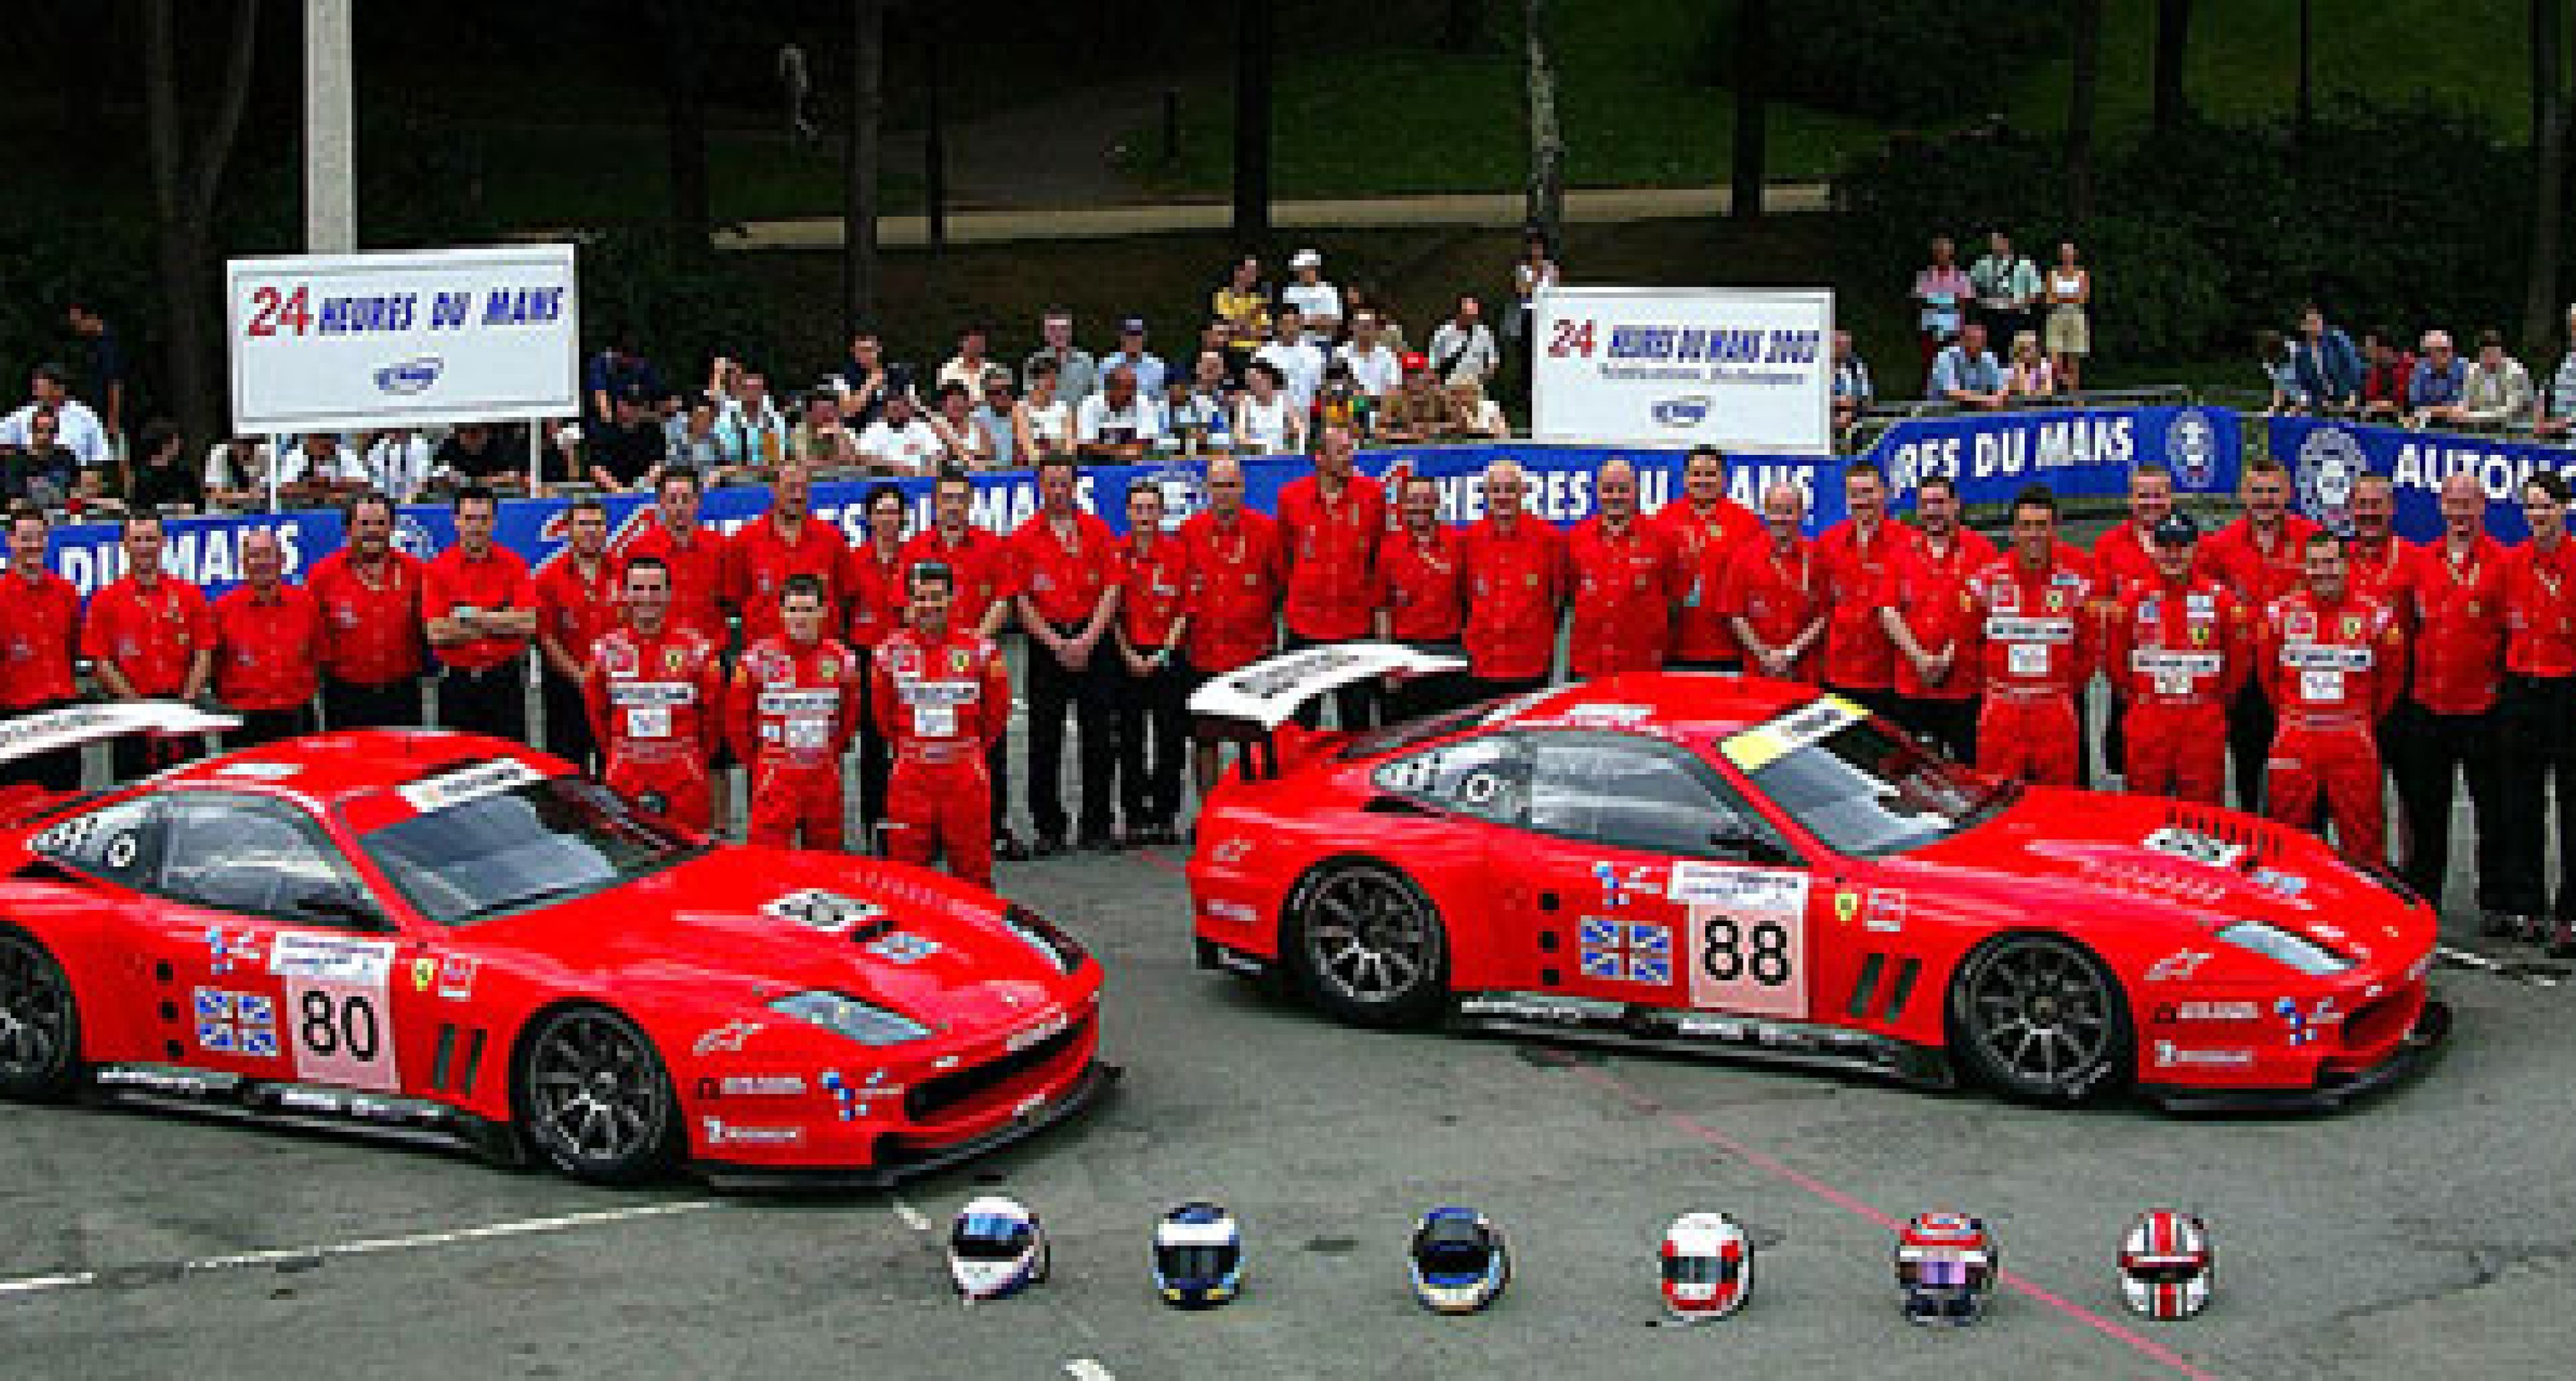 First Ferrari  GT victory at Le Mans since 1974 - looking forward to UK FIA GT Race on 29 June